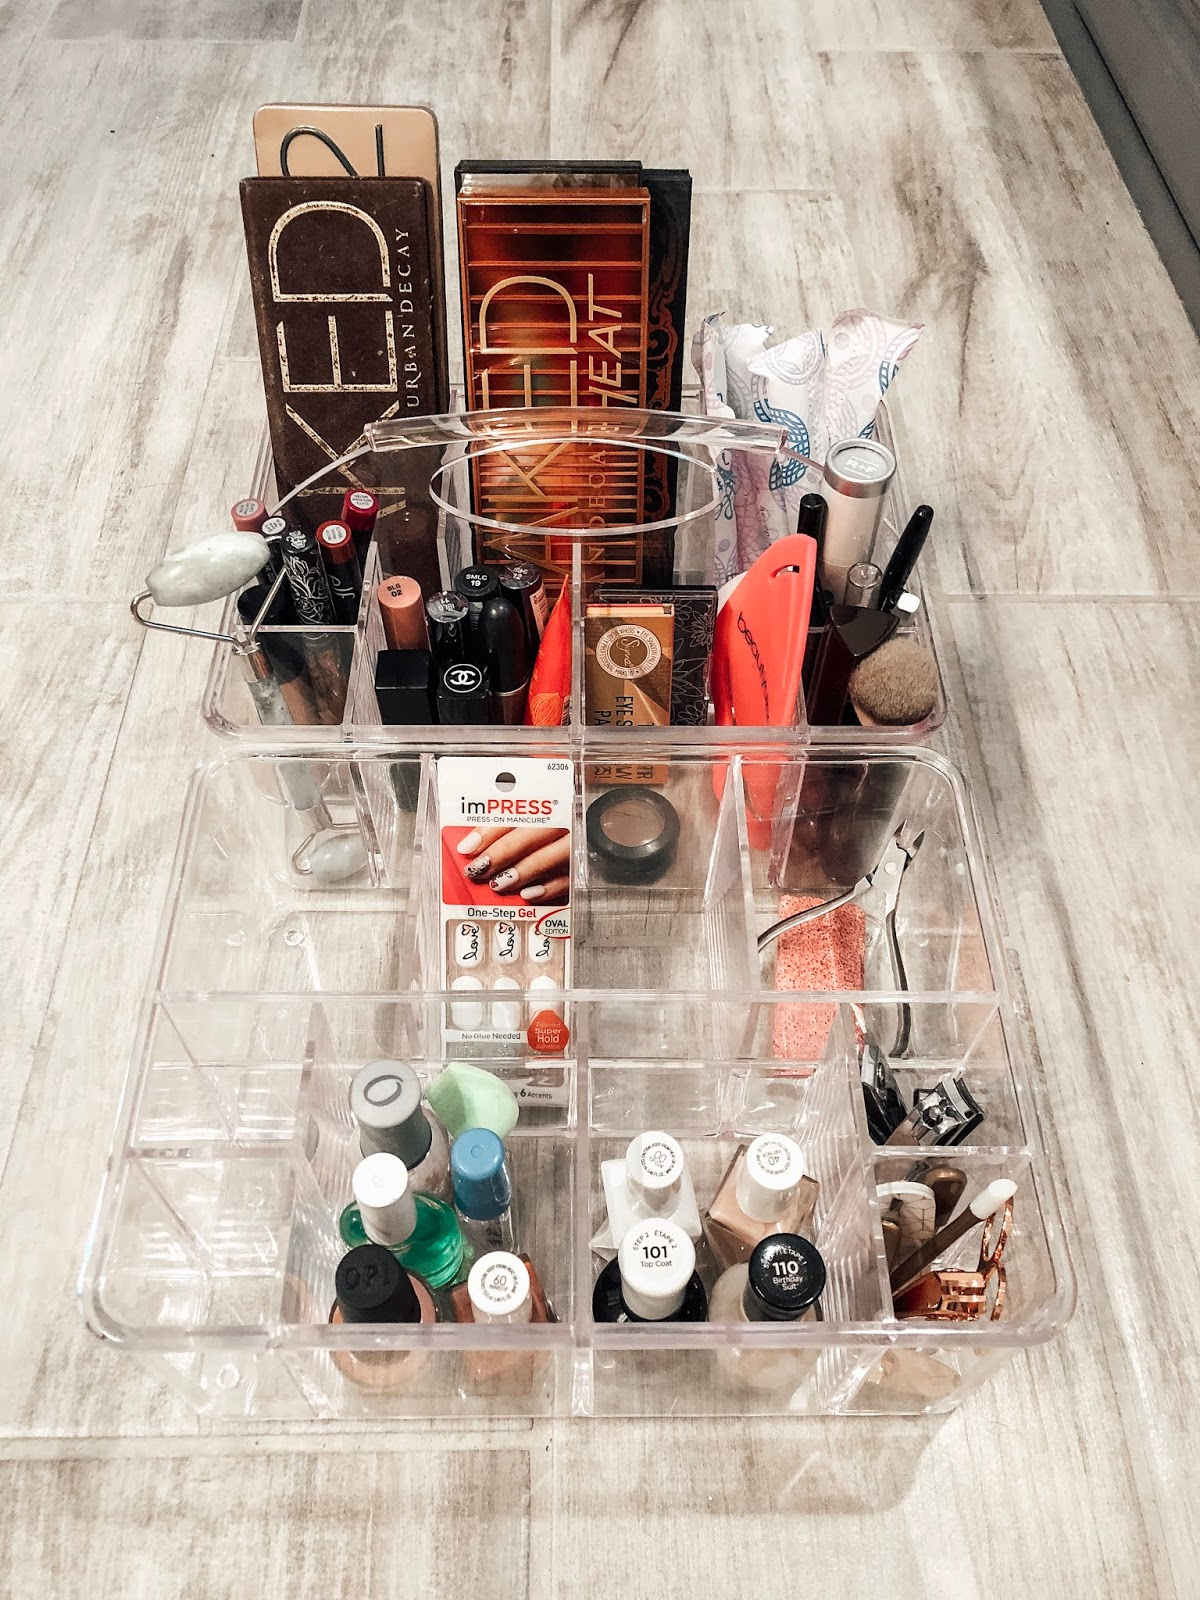 Makeup and manicure set organizers